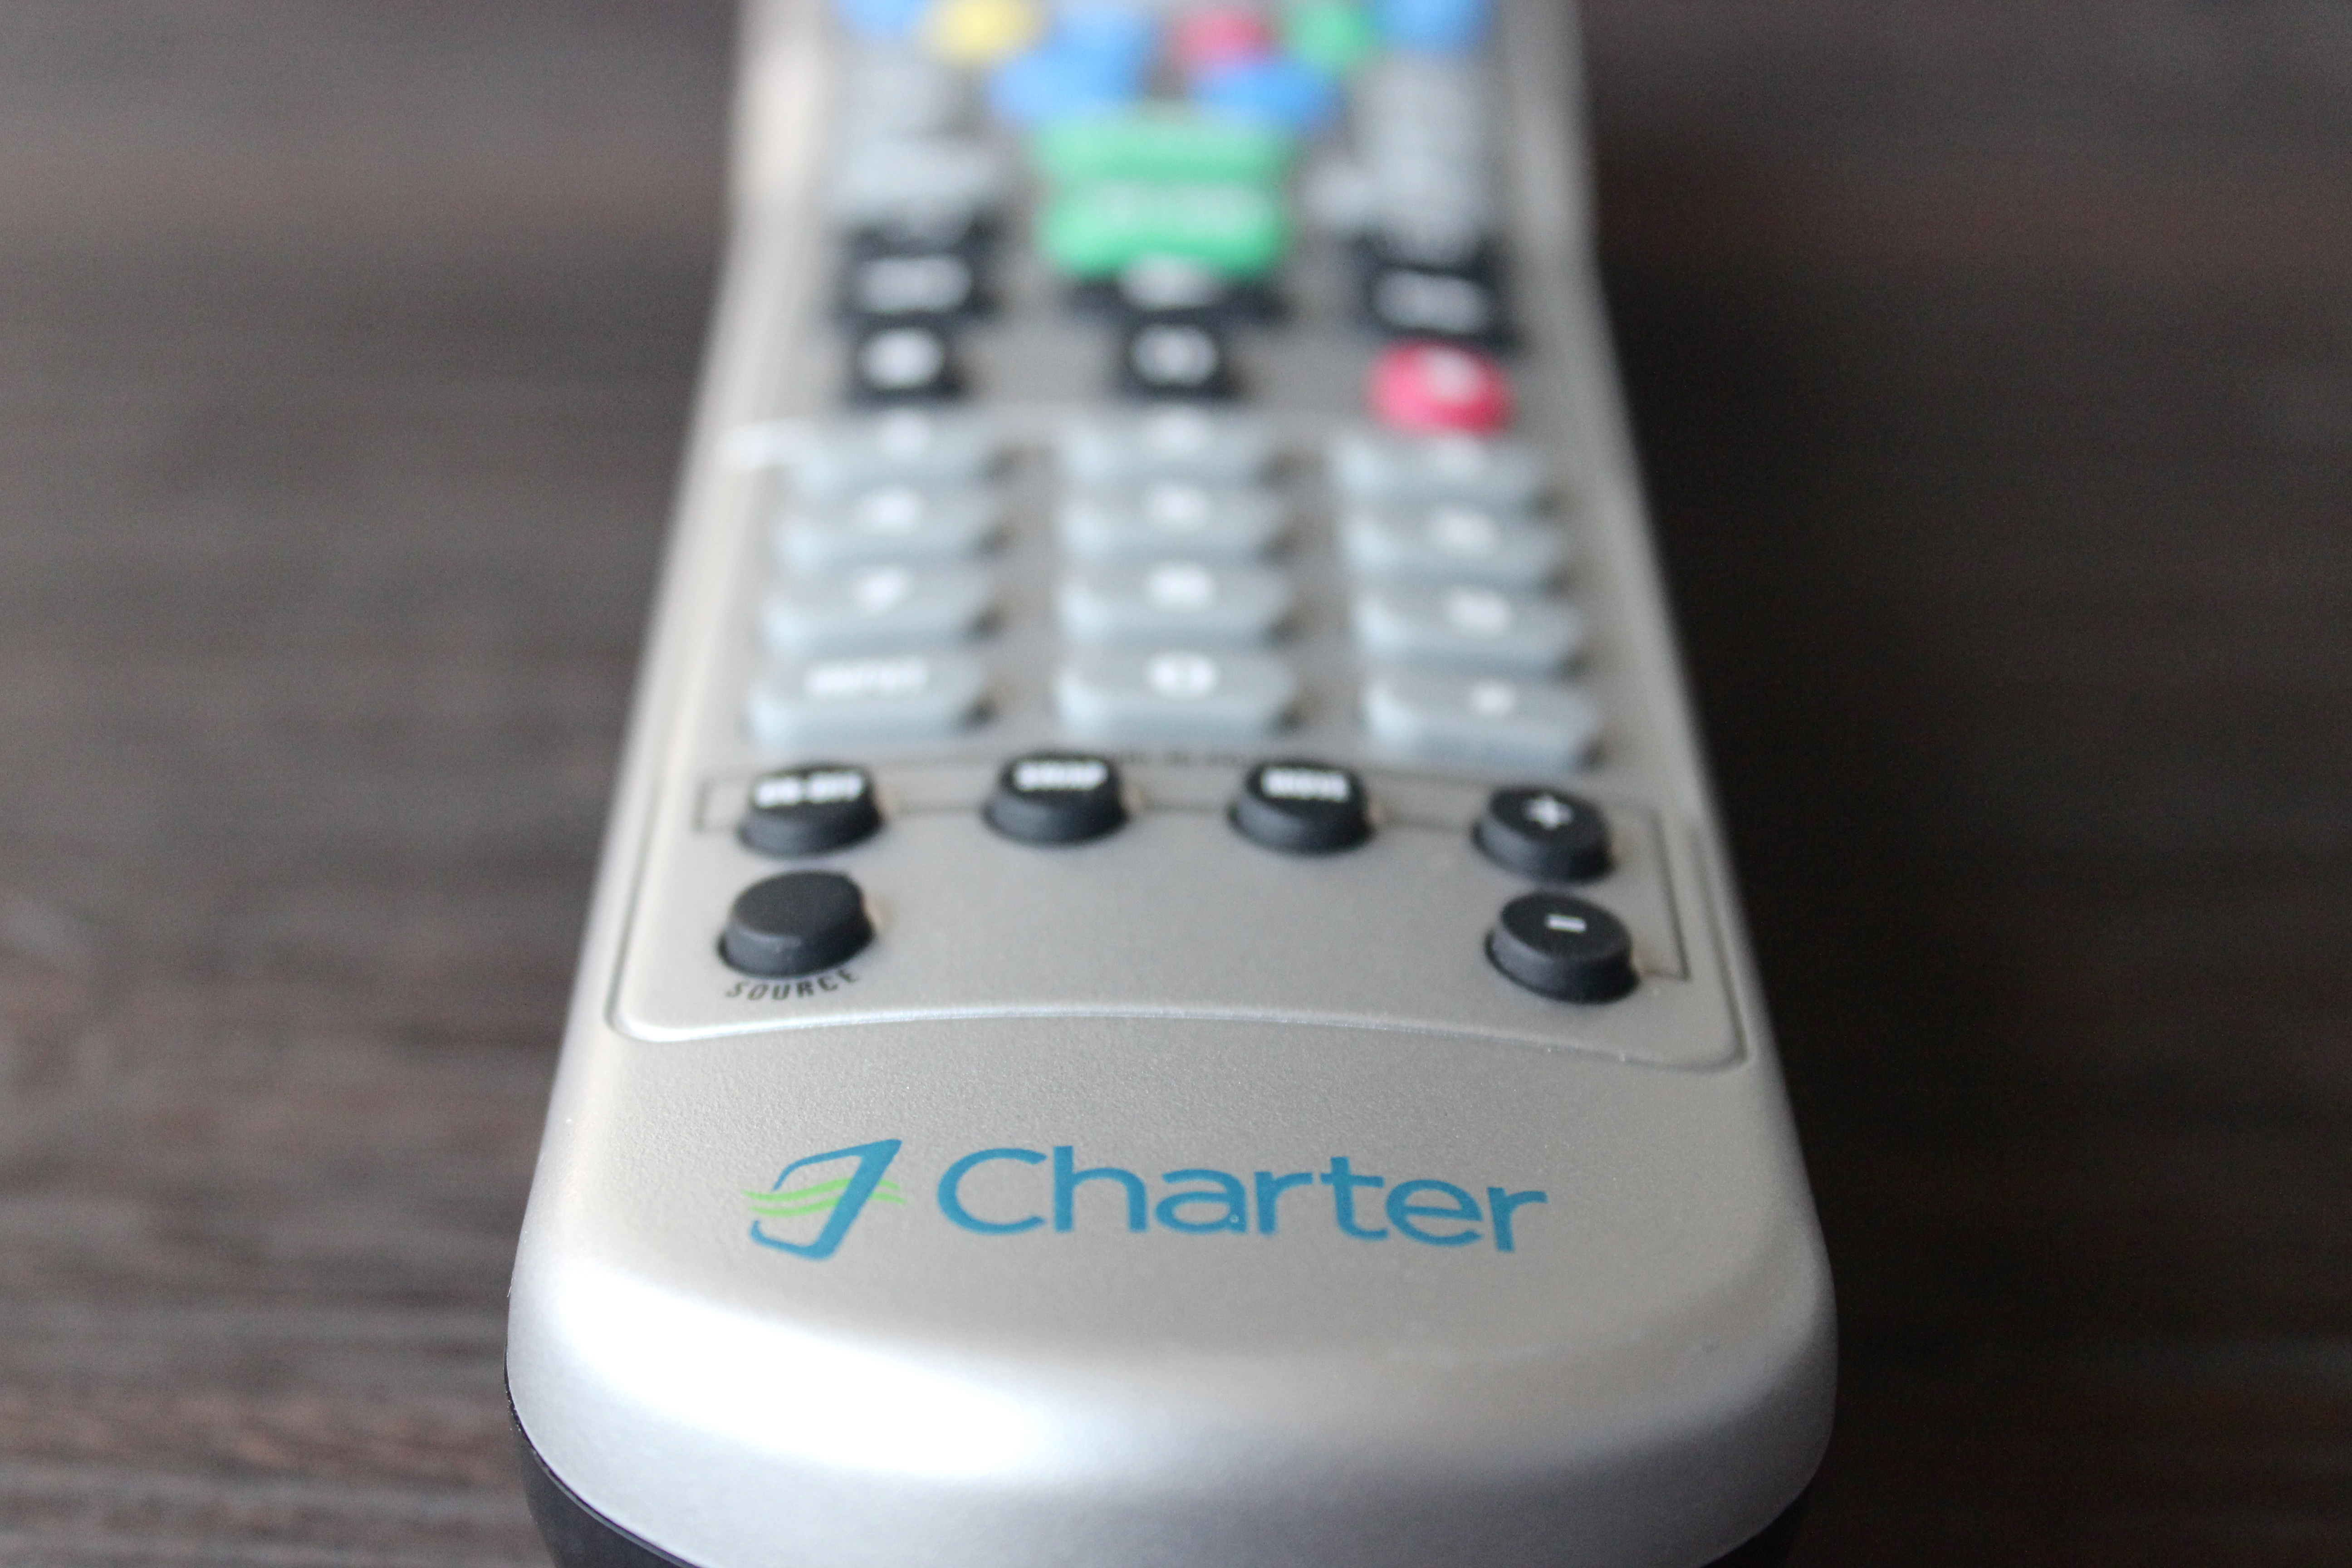 Program dvd player to charter remote / Raven behind the voice actors